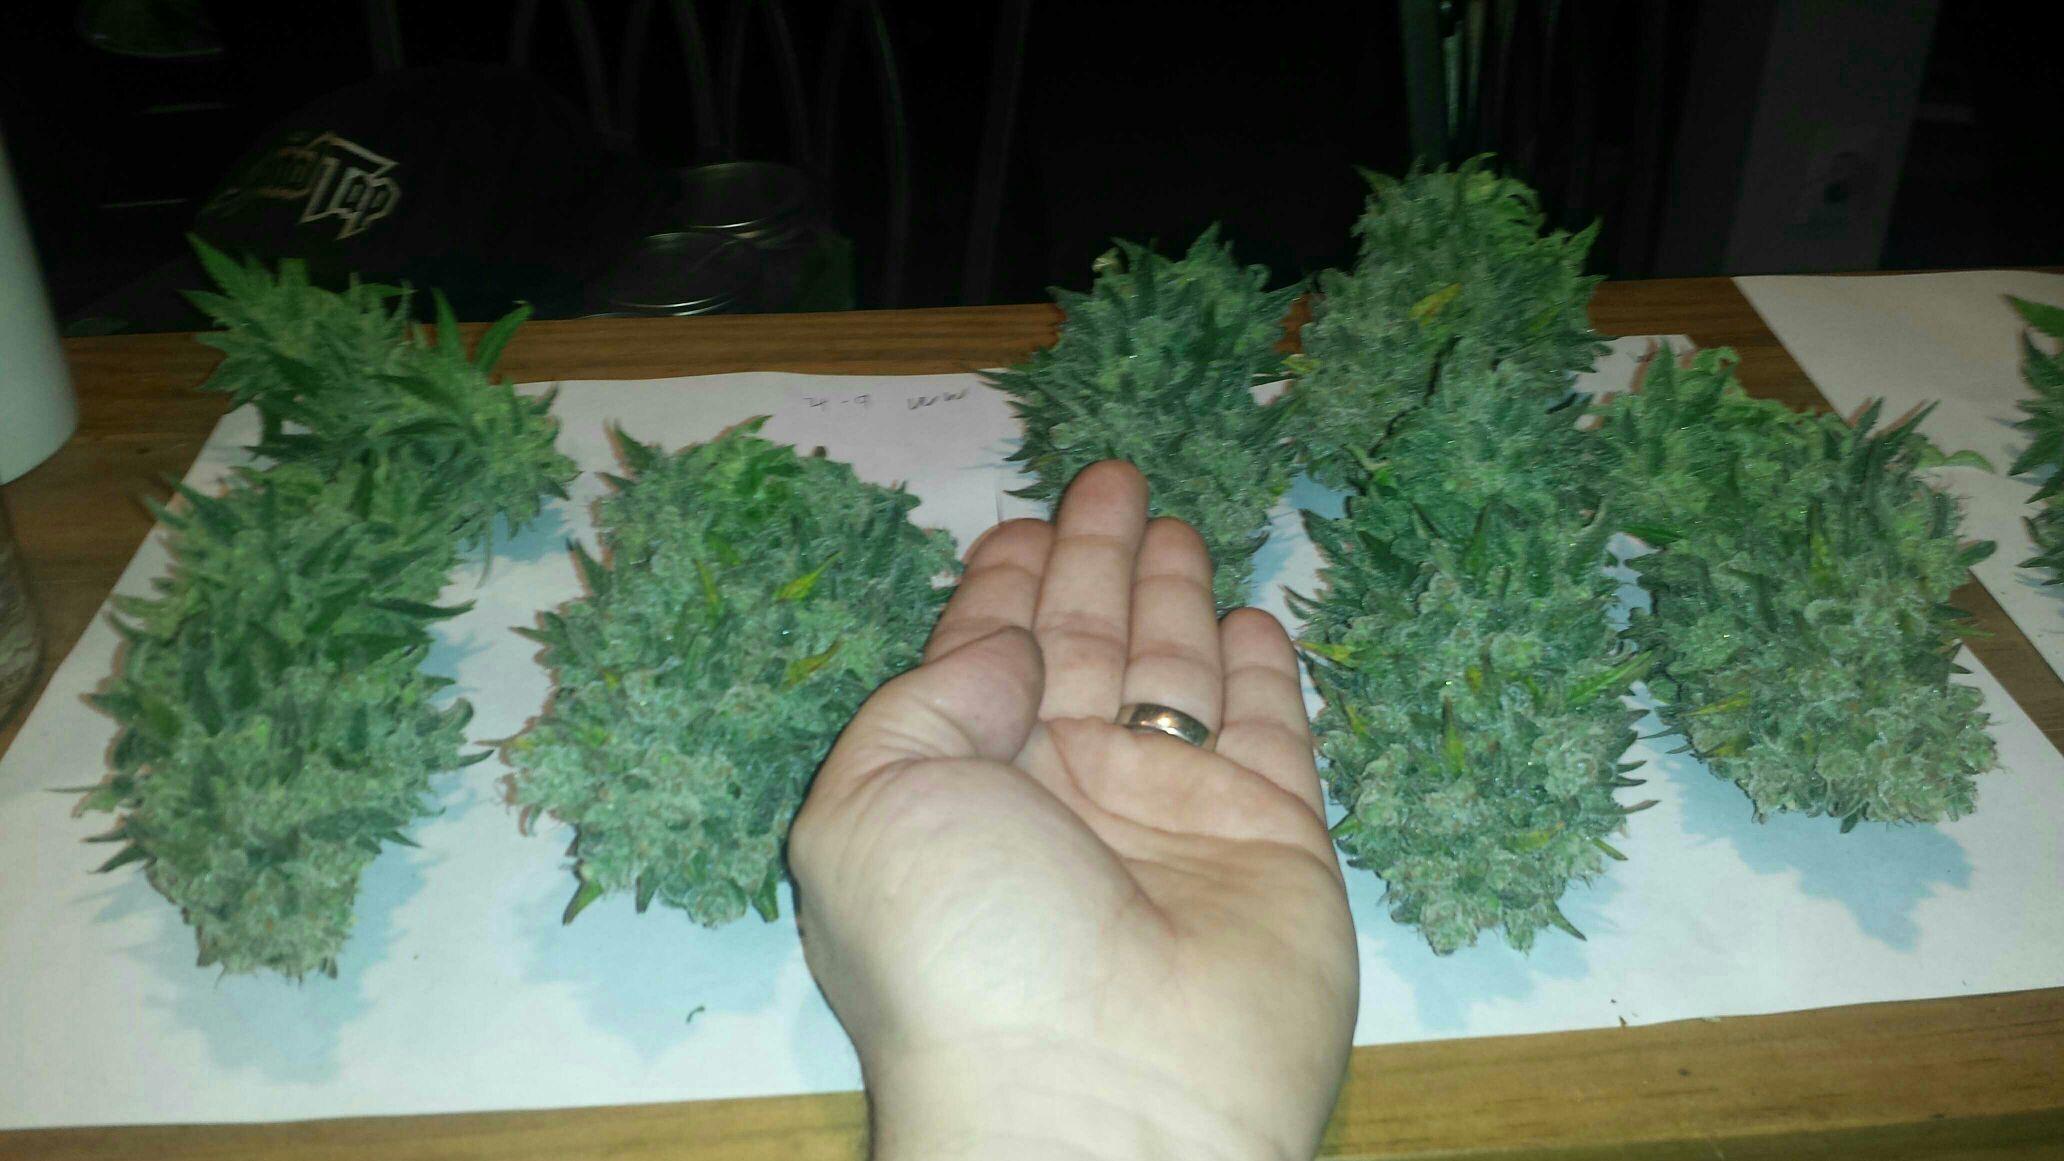 Round one. Thereu0027s about 2x this much on one plant that needs another 5 days. Bottom line is you can do it. By the end of the week Iu0027ll have just under a ... & 600 HPS in 2x2x5u0027 grow tent | Grasscity Forums